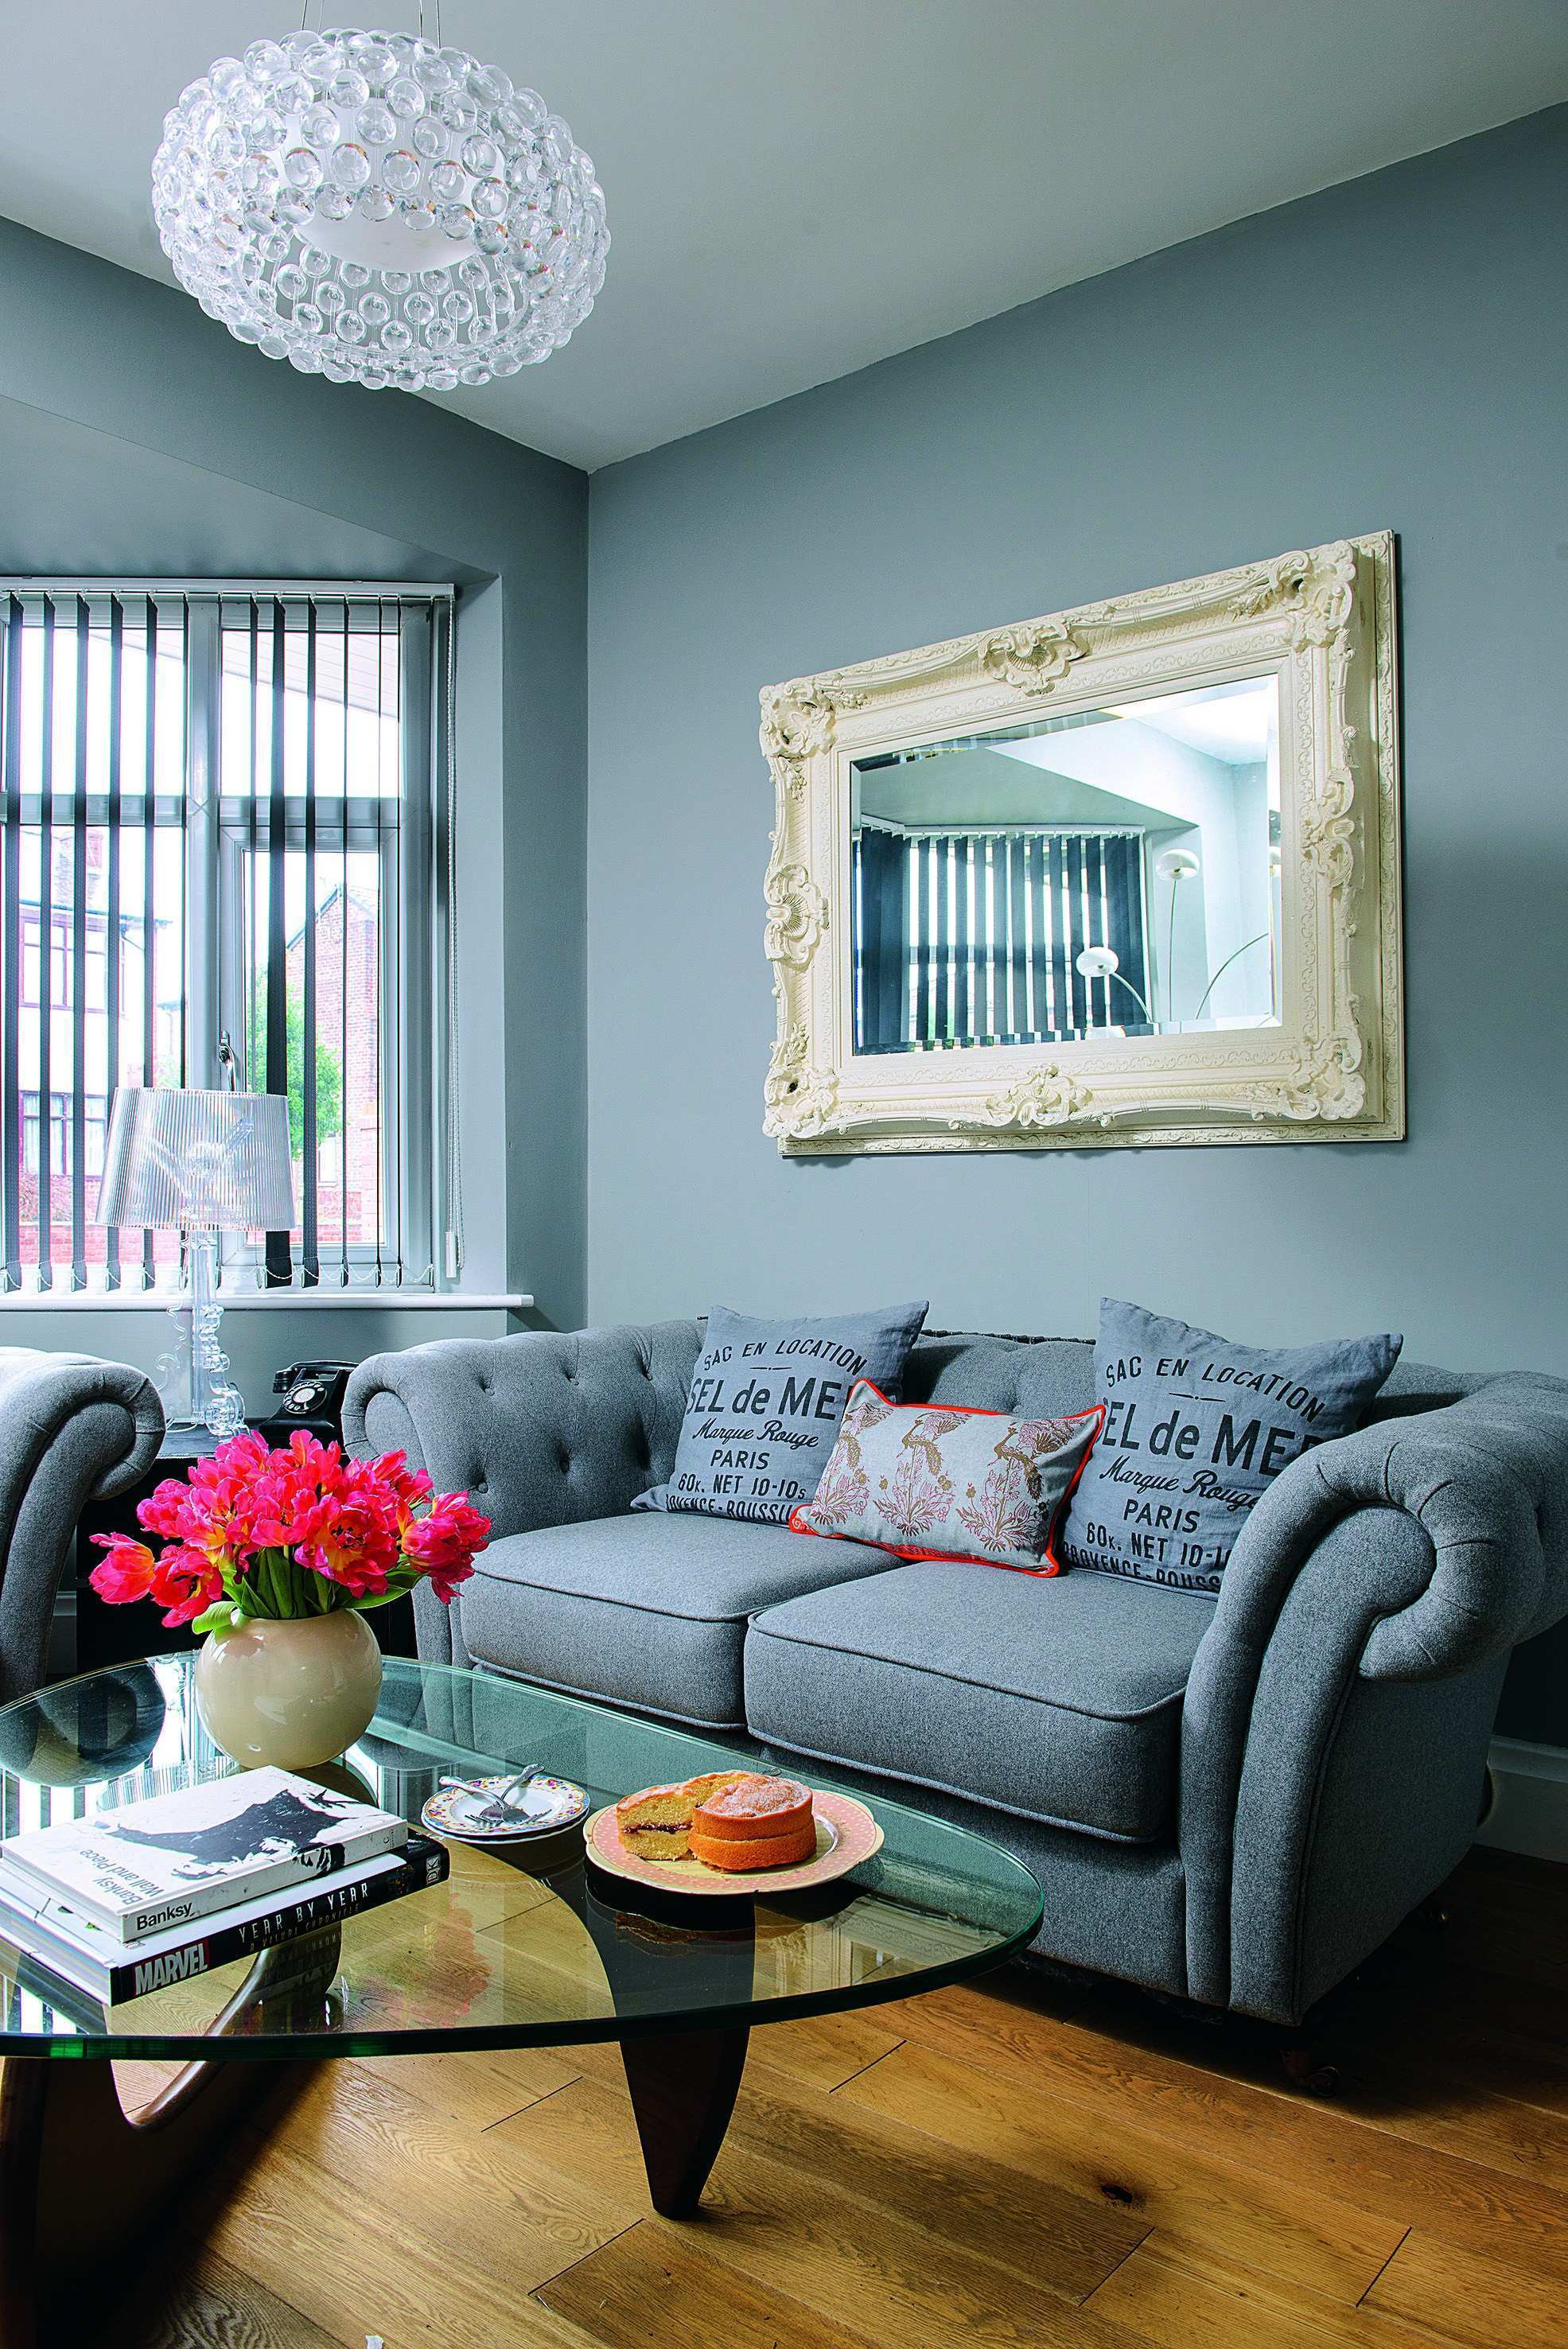 Home Designs Decorative Mirrors For Living Room Awesome Wall Decal